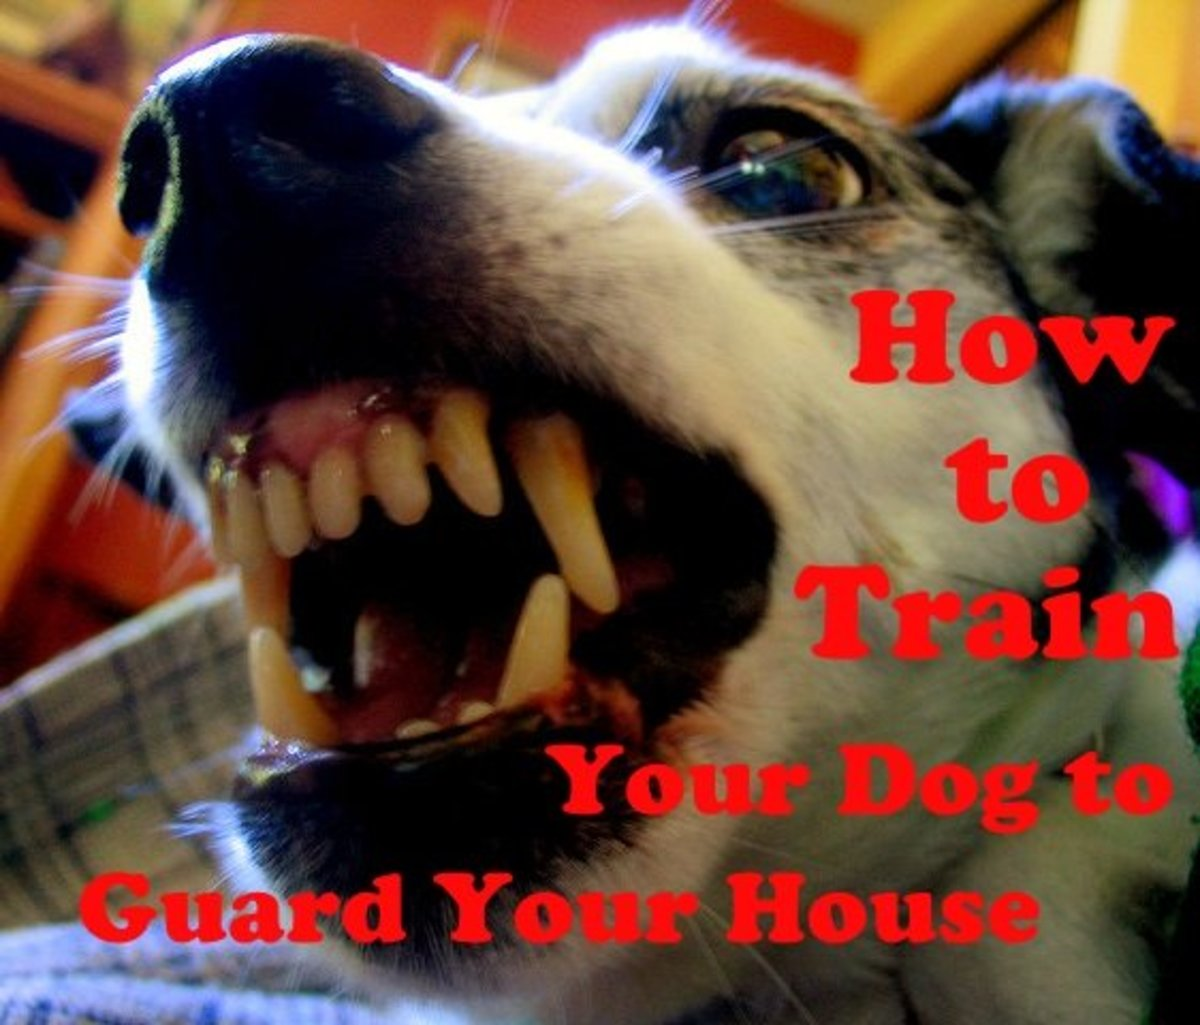 How to train your dog to guard your house.